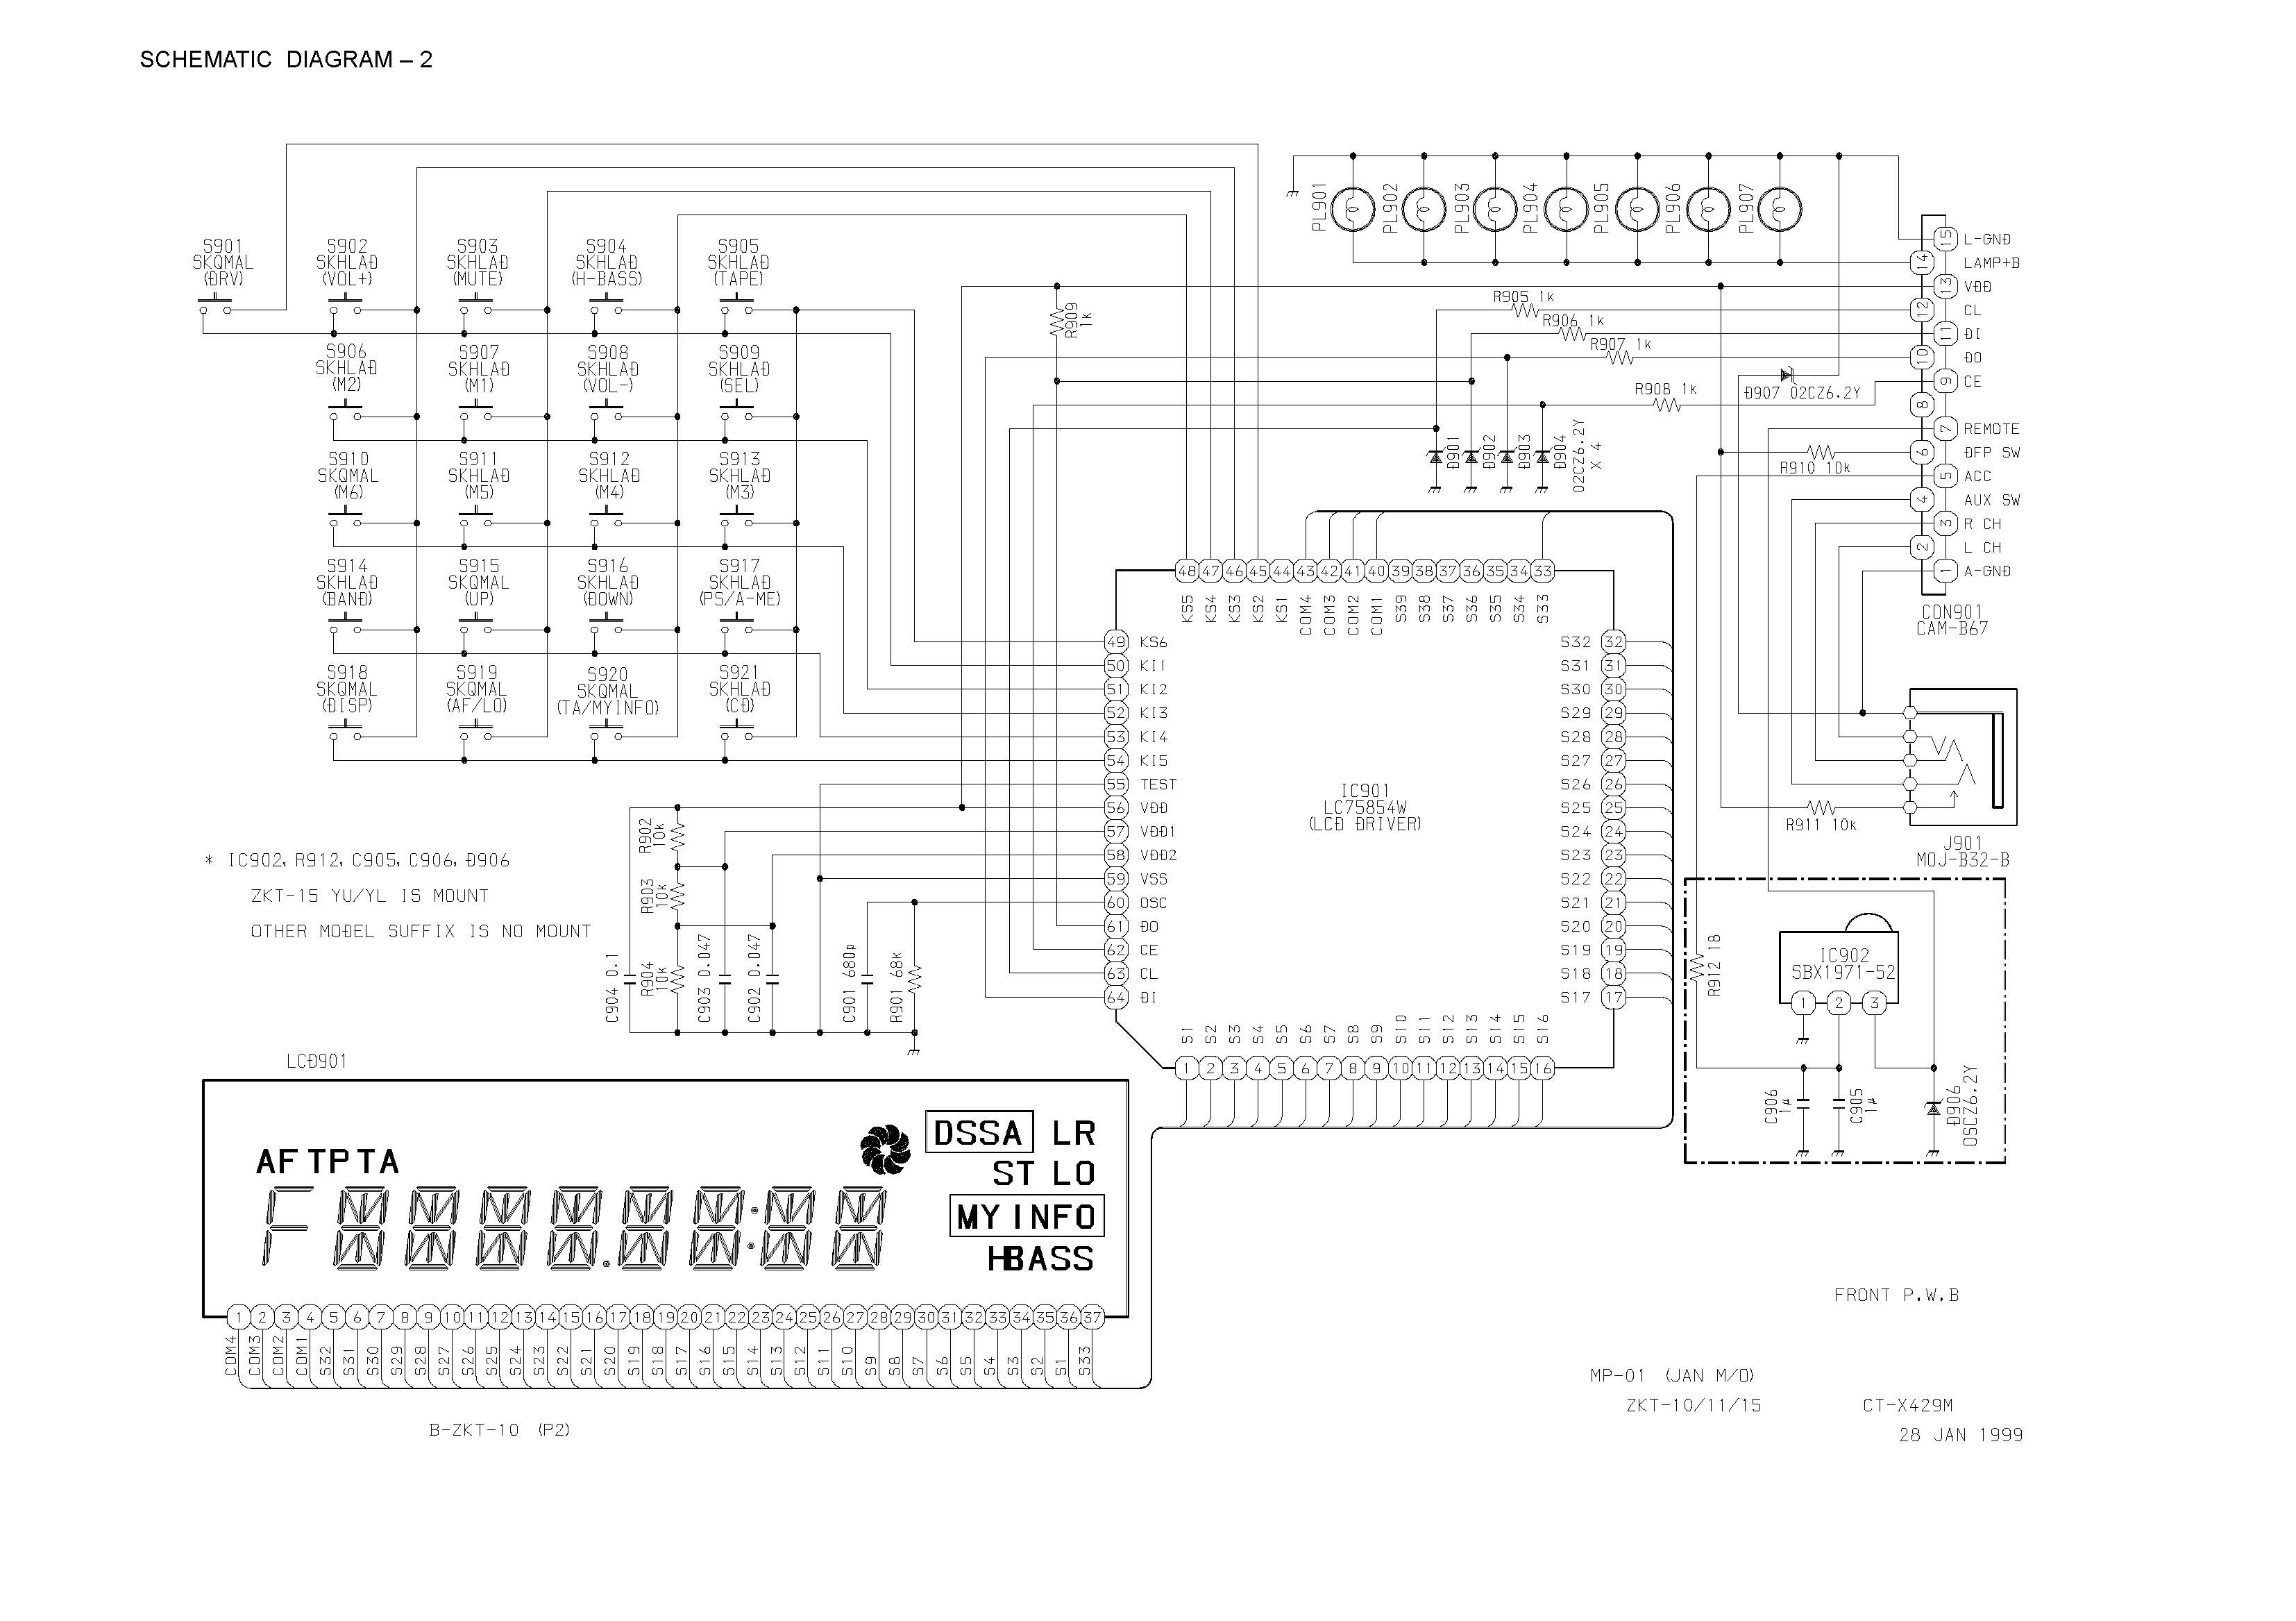 Aiwa CT-R 429 M Schematic Diagram (Main / Front) in PDF